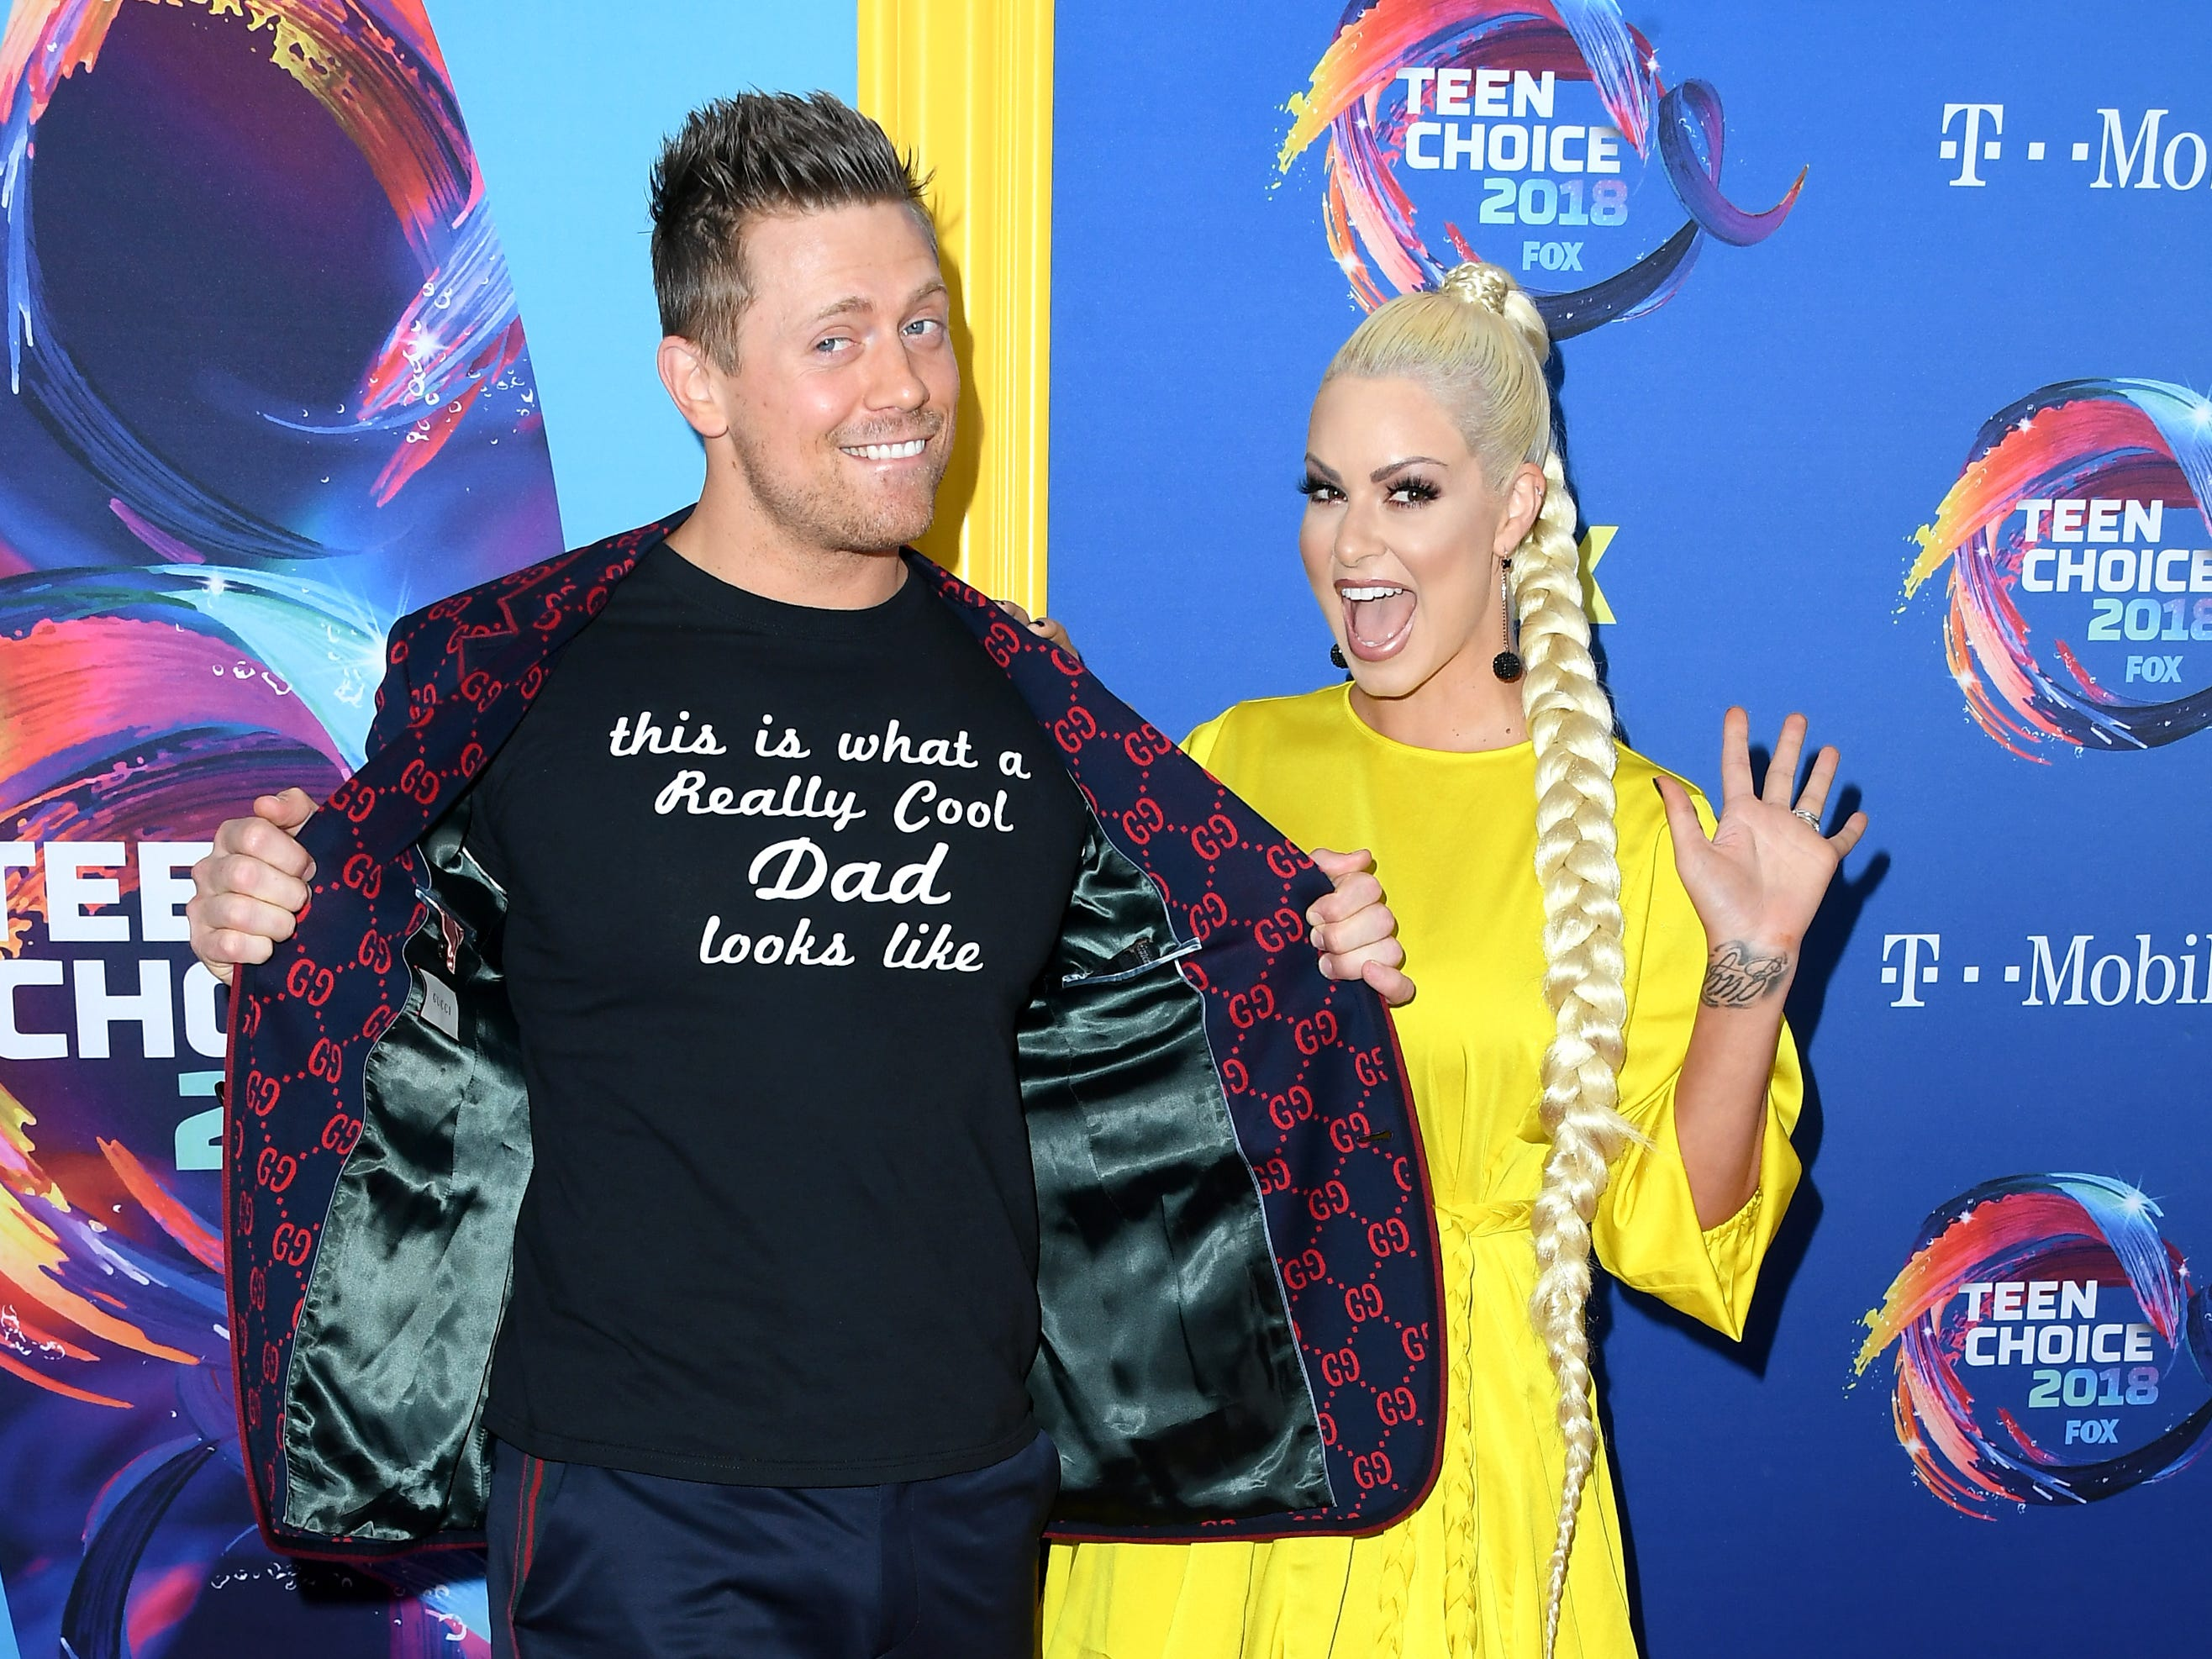 INGLEWOOD, CA - AUGUST 12: Mike 'The Miz' Mizanin and Maryse Mizanin attend  FOX's Teen Choice Awards at The Forum on August 12, 2018 in Inglewood, California.  (Photo by Steve Granitz/WireImage) ORG XMIT: 775199266 ORIG FILE ID: 1015794644